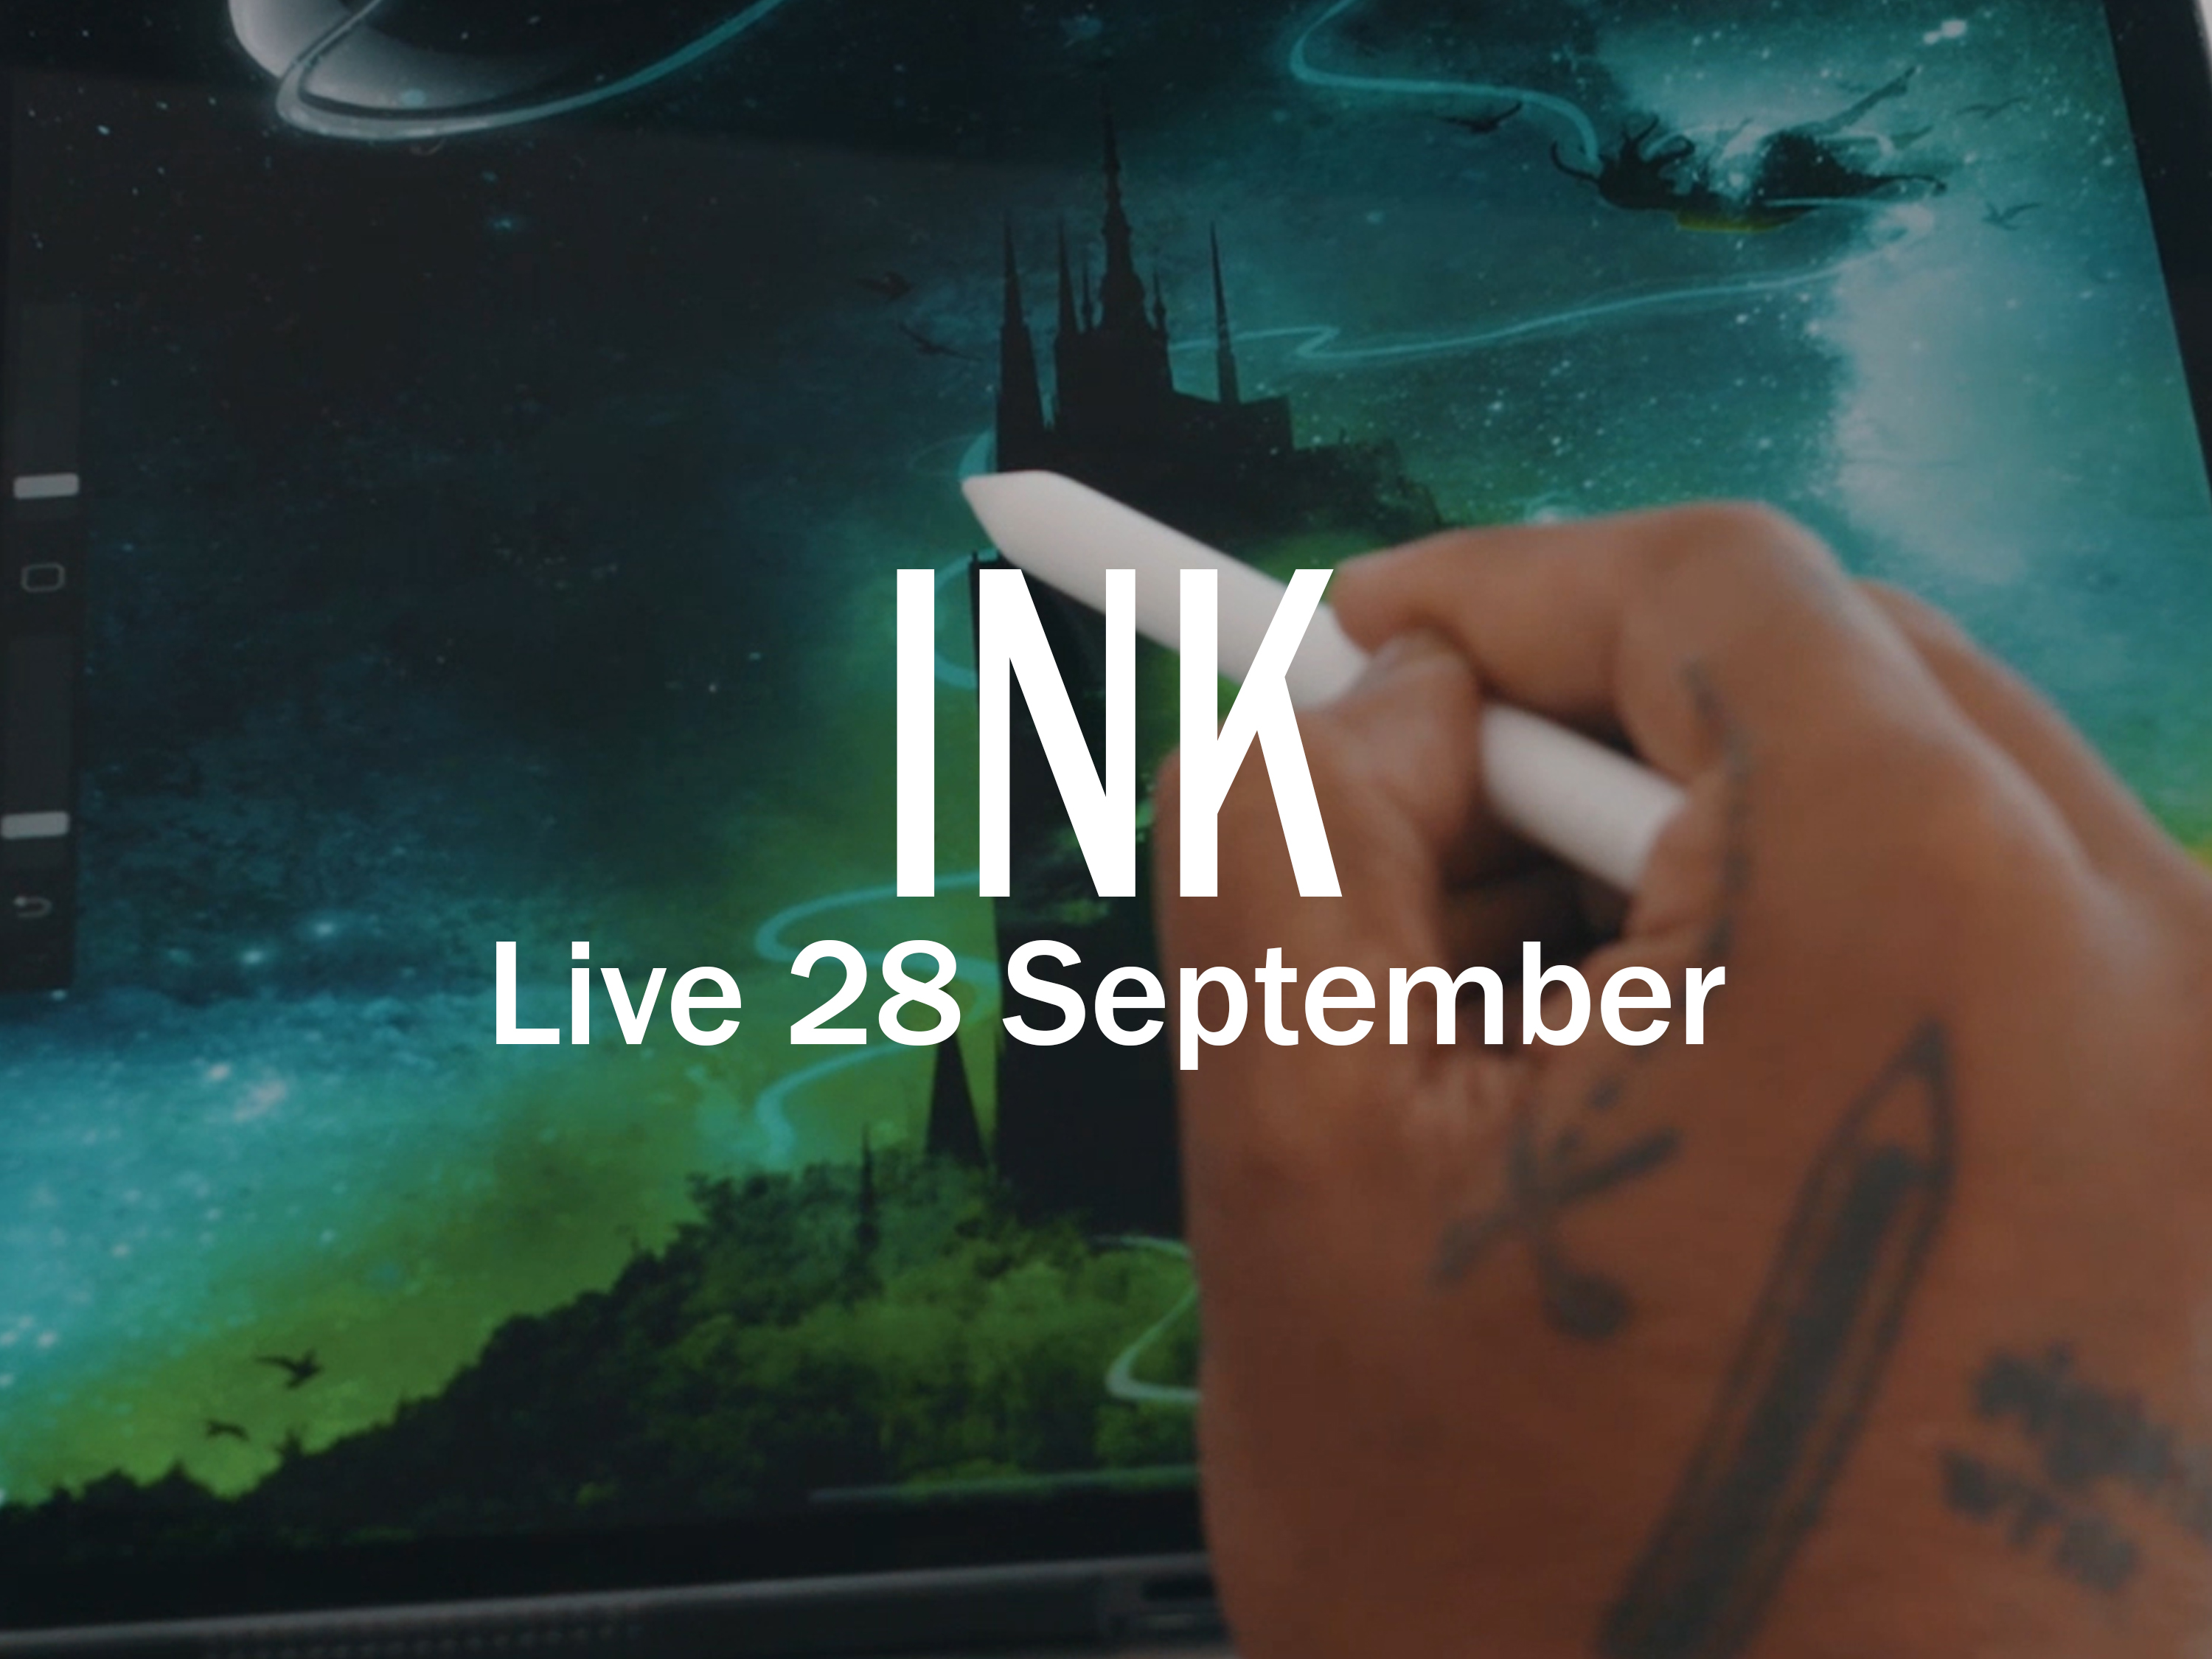 Amandeep Singh aka Ink interview will be available from 28 sept